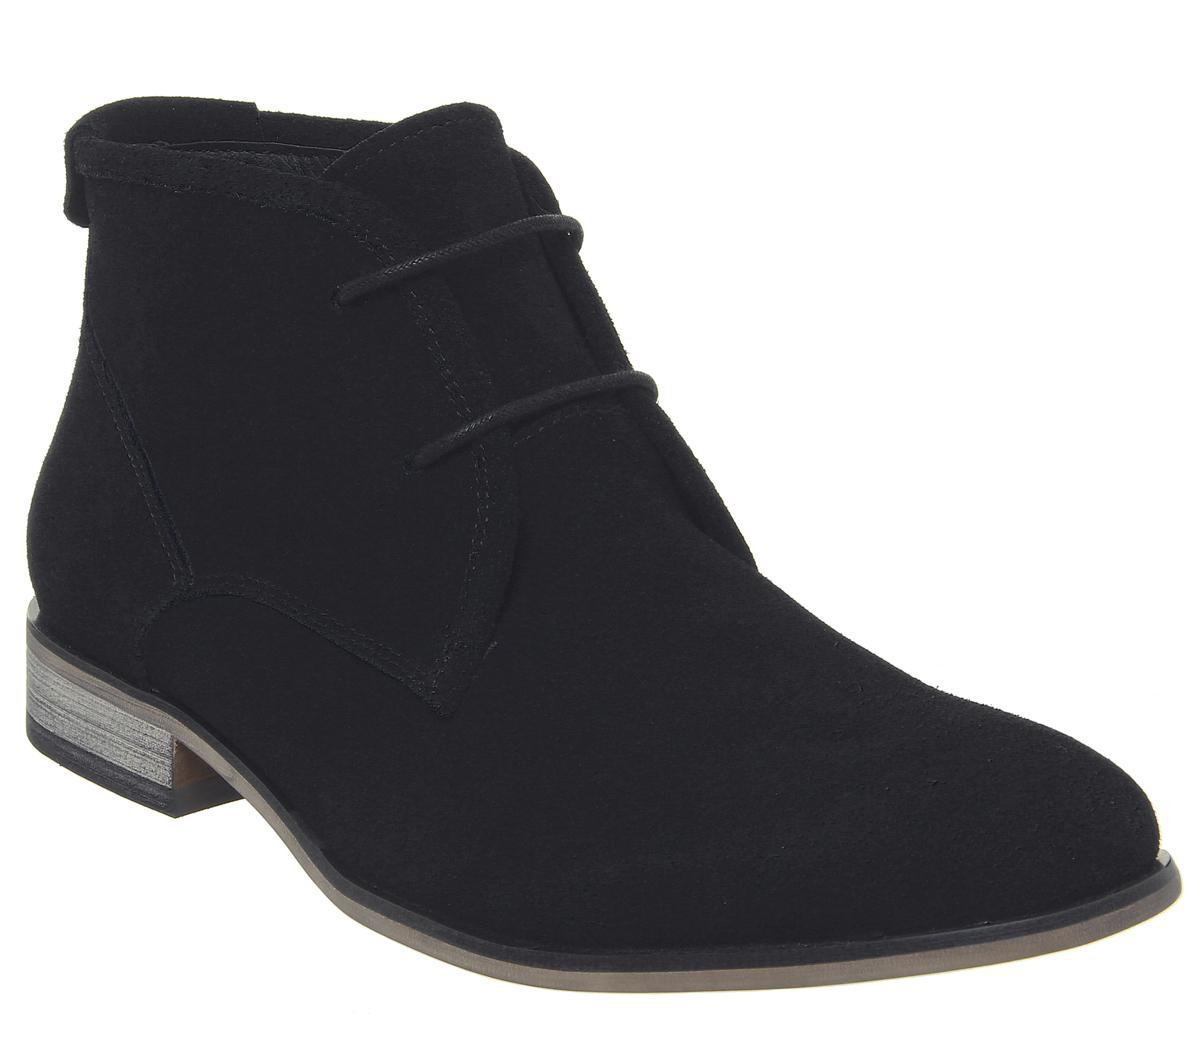 Mens Office Barker Chukka Boot Black Suede